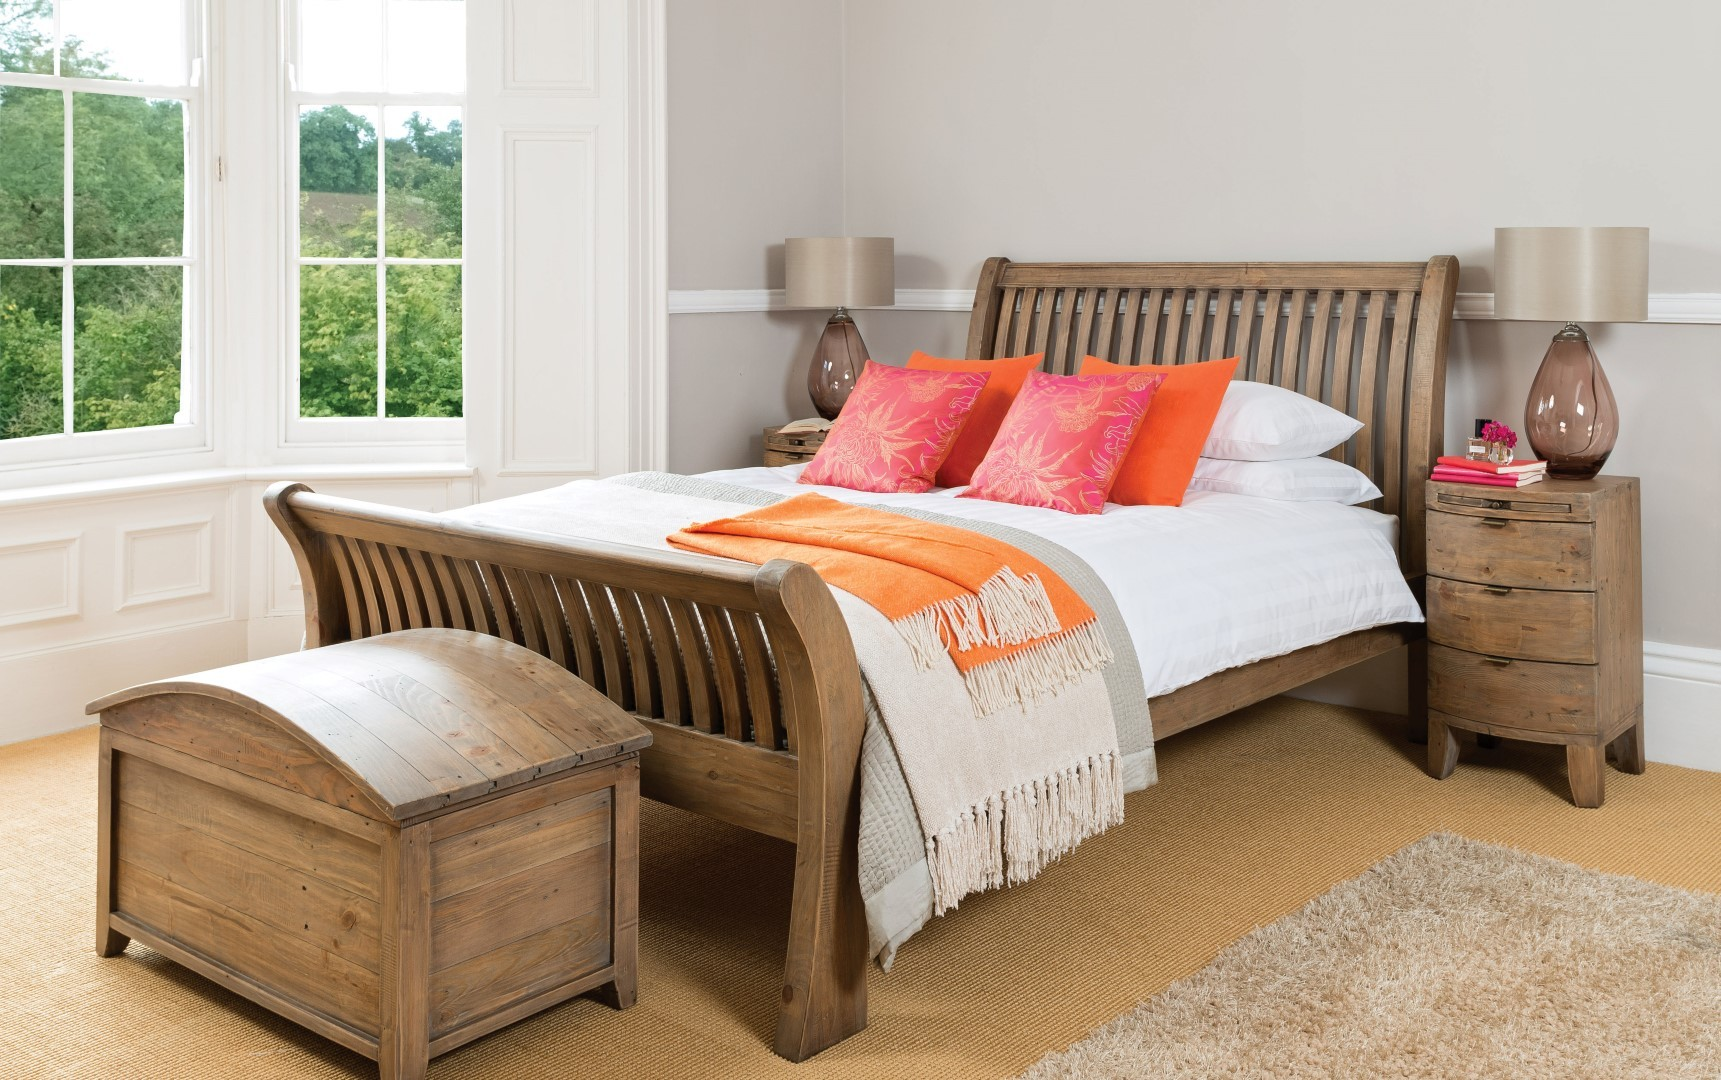 Antigua Reclaimed King Size Bed Casa Bella Furniture UK